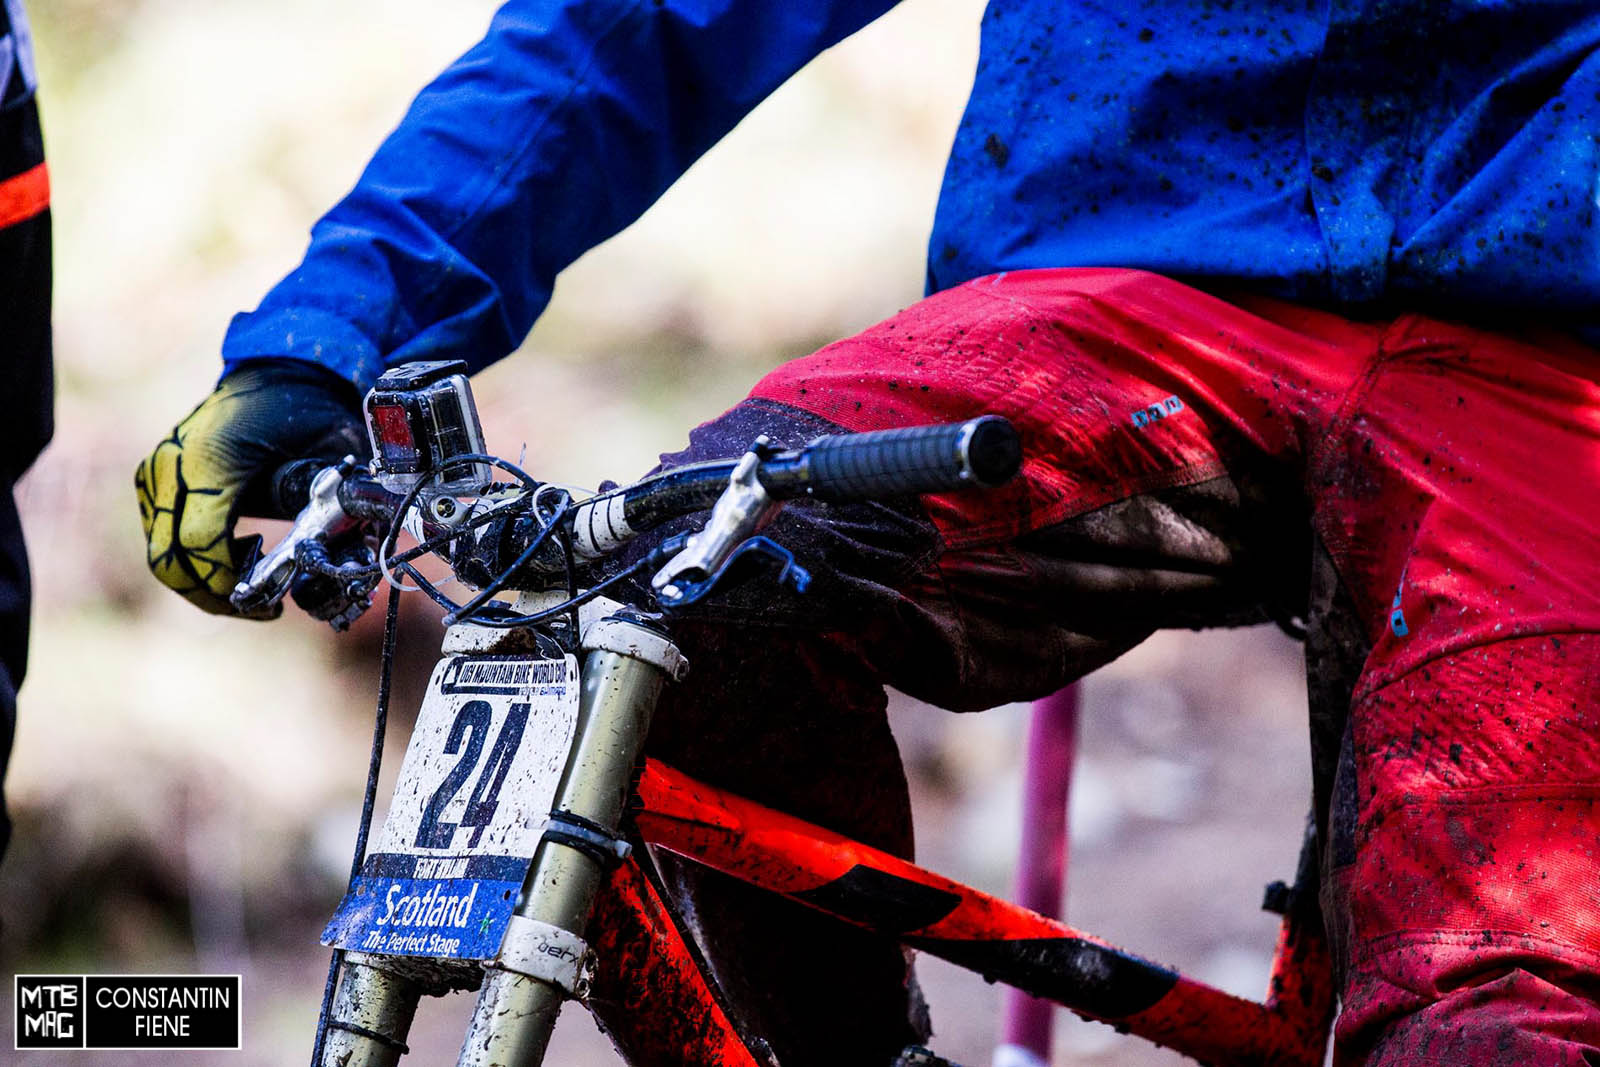 With the  UCI ban on helment cams, no the only thing we can look forward to is shaky handlebar footage.